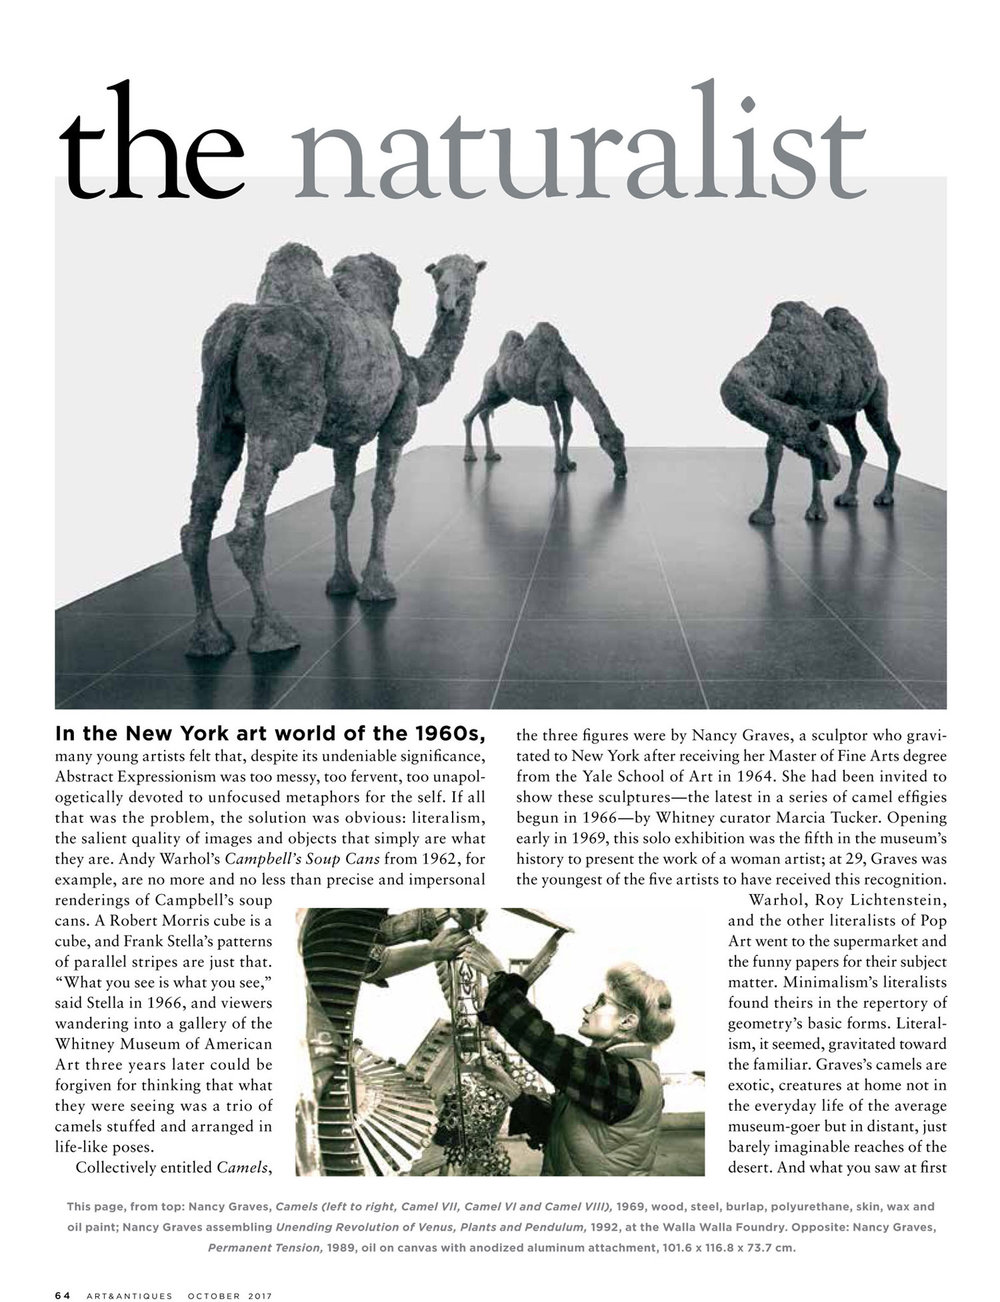 The Naturalist , by Carter Ratcliff, Art & Antiques, October 2017